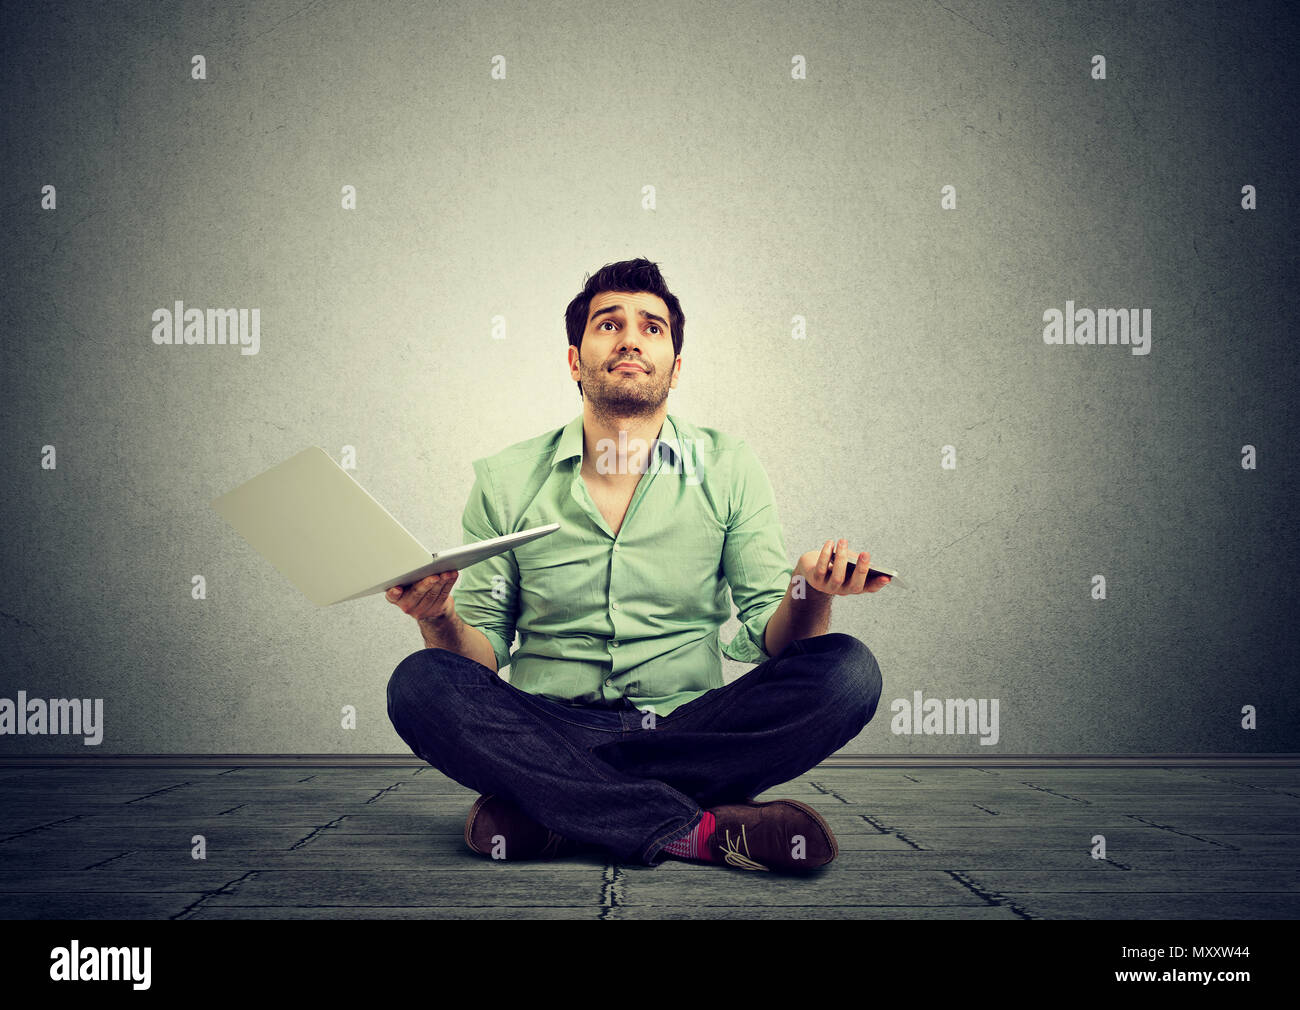 Casual man sitting on floor with laptop in hands while shrugging with shoulders in misunderstanding - Stock Image